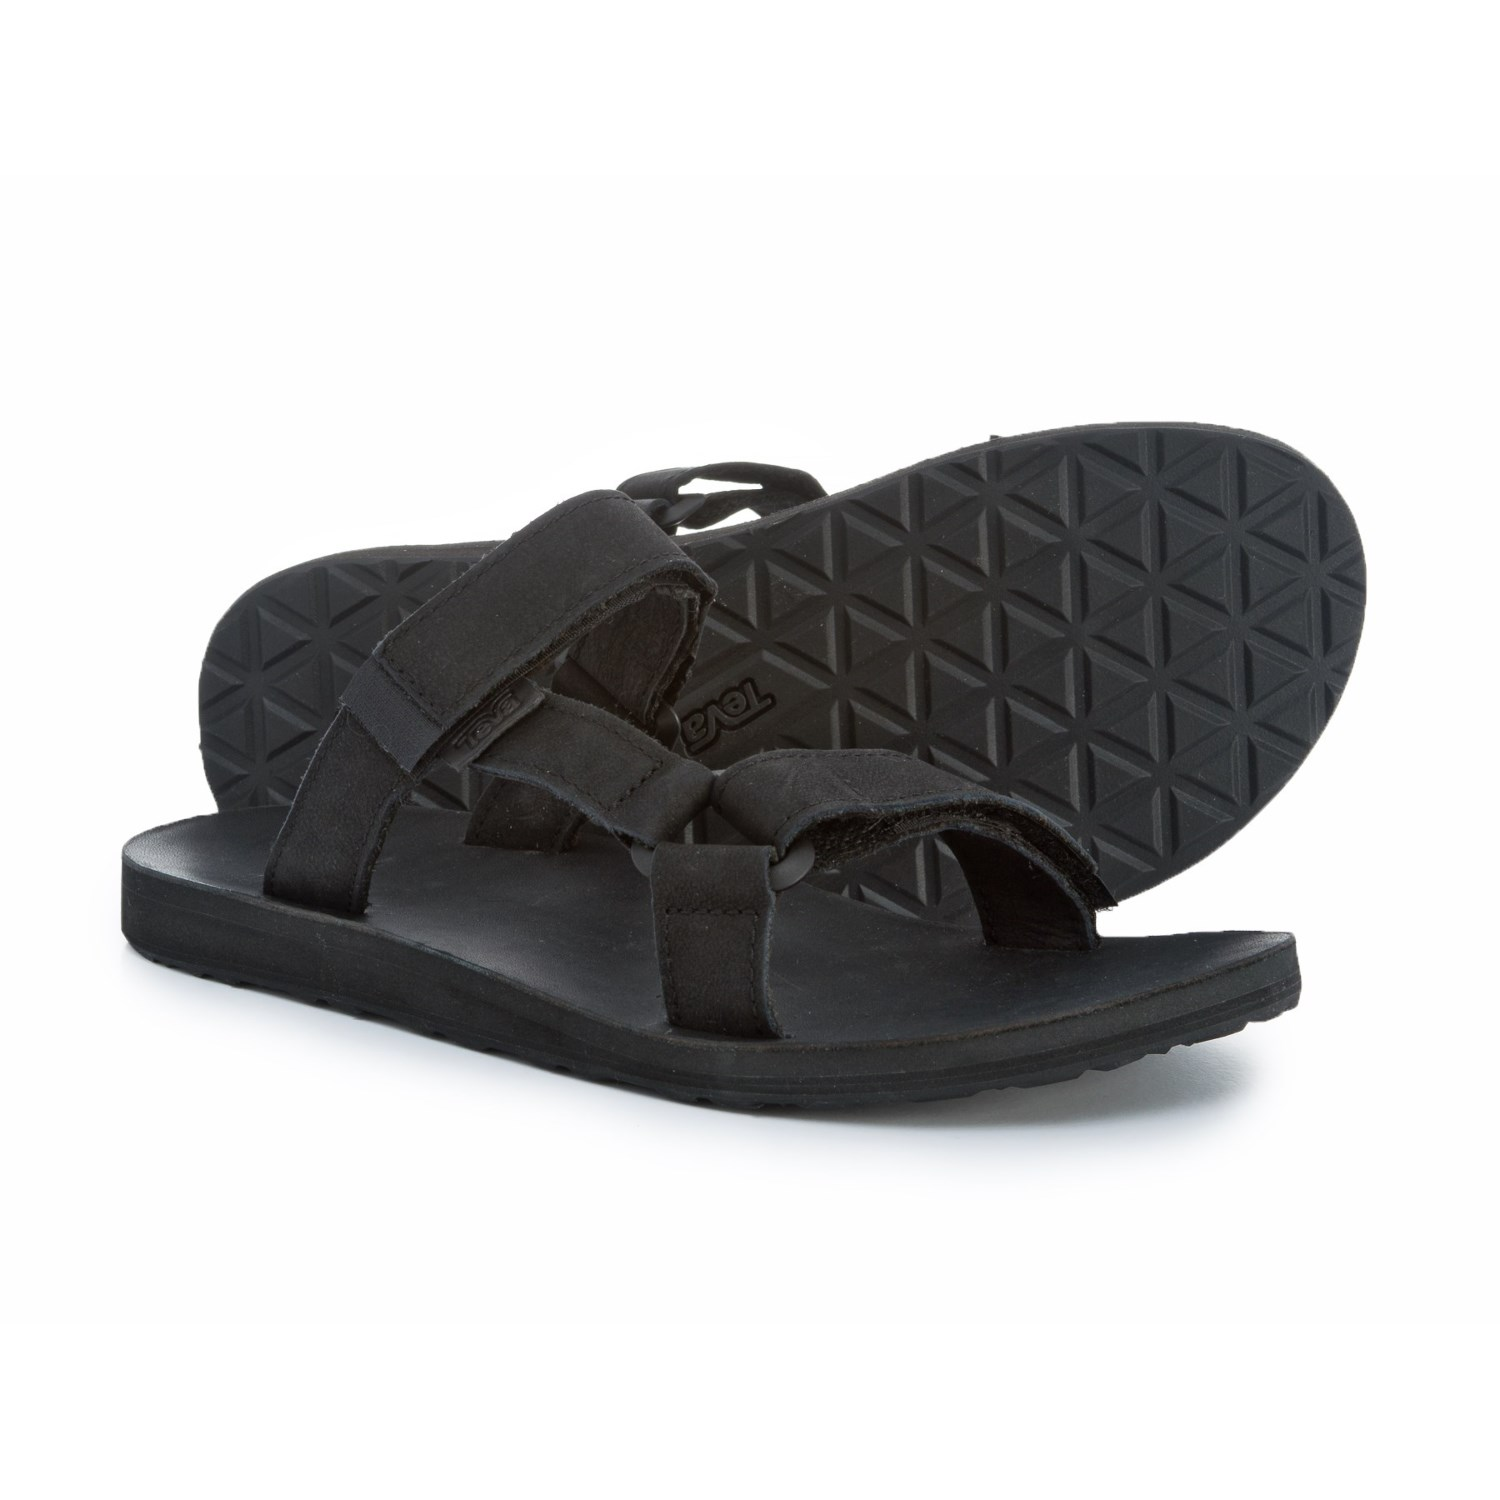 foto Expanding sandals are now available to buy commercially